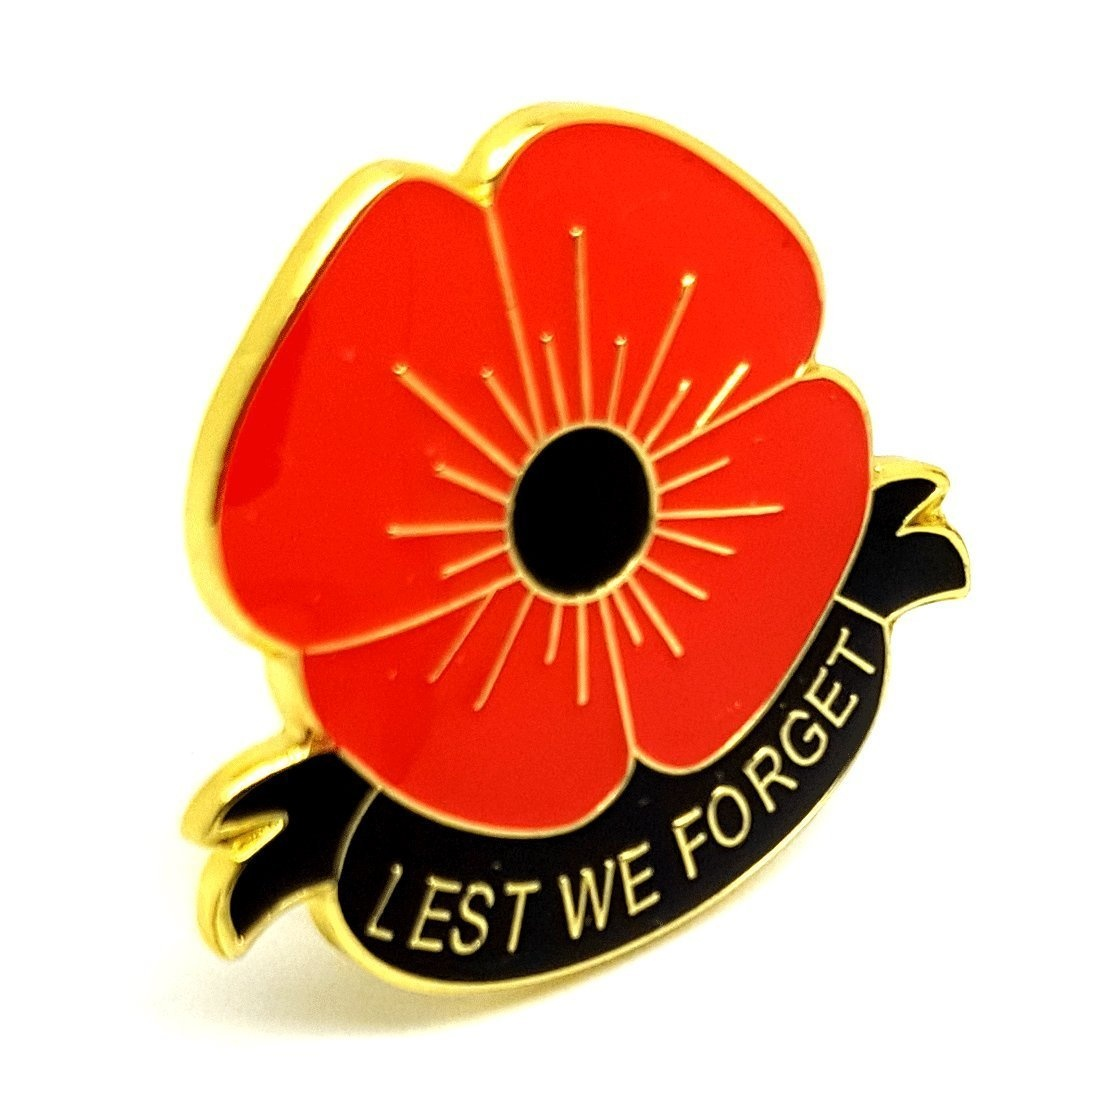 Remembrance day red poppy flower mod target raf roundel remember remembrance day red poppy flower mod target raf roundel remember them gift metal enamel pin badge mightylinksfo